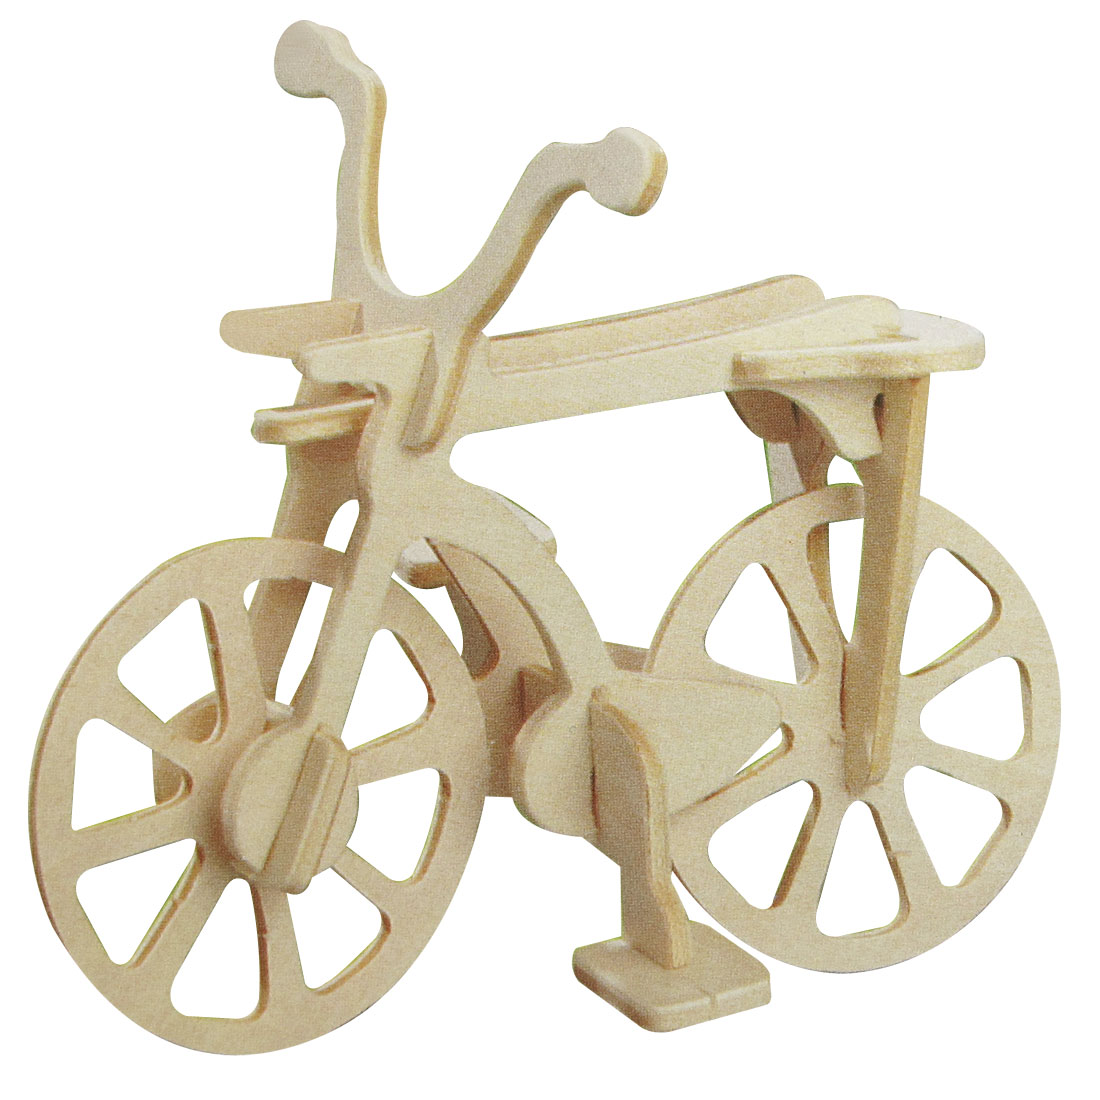 3D Assemble Educational Intelligence Bicycle Wooden Puzzle Toy